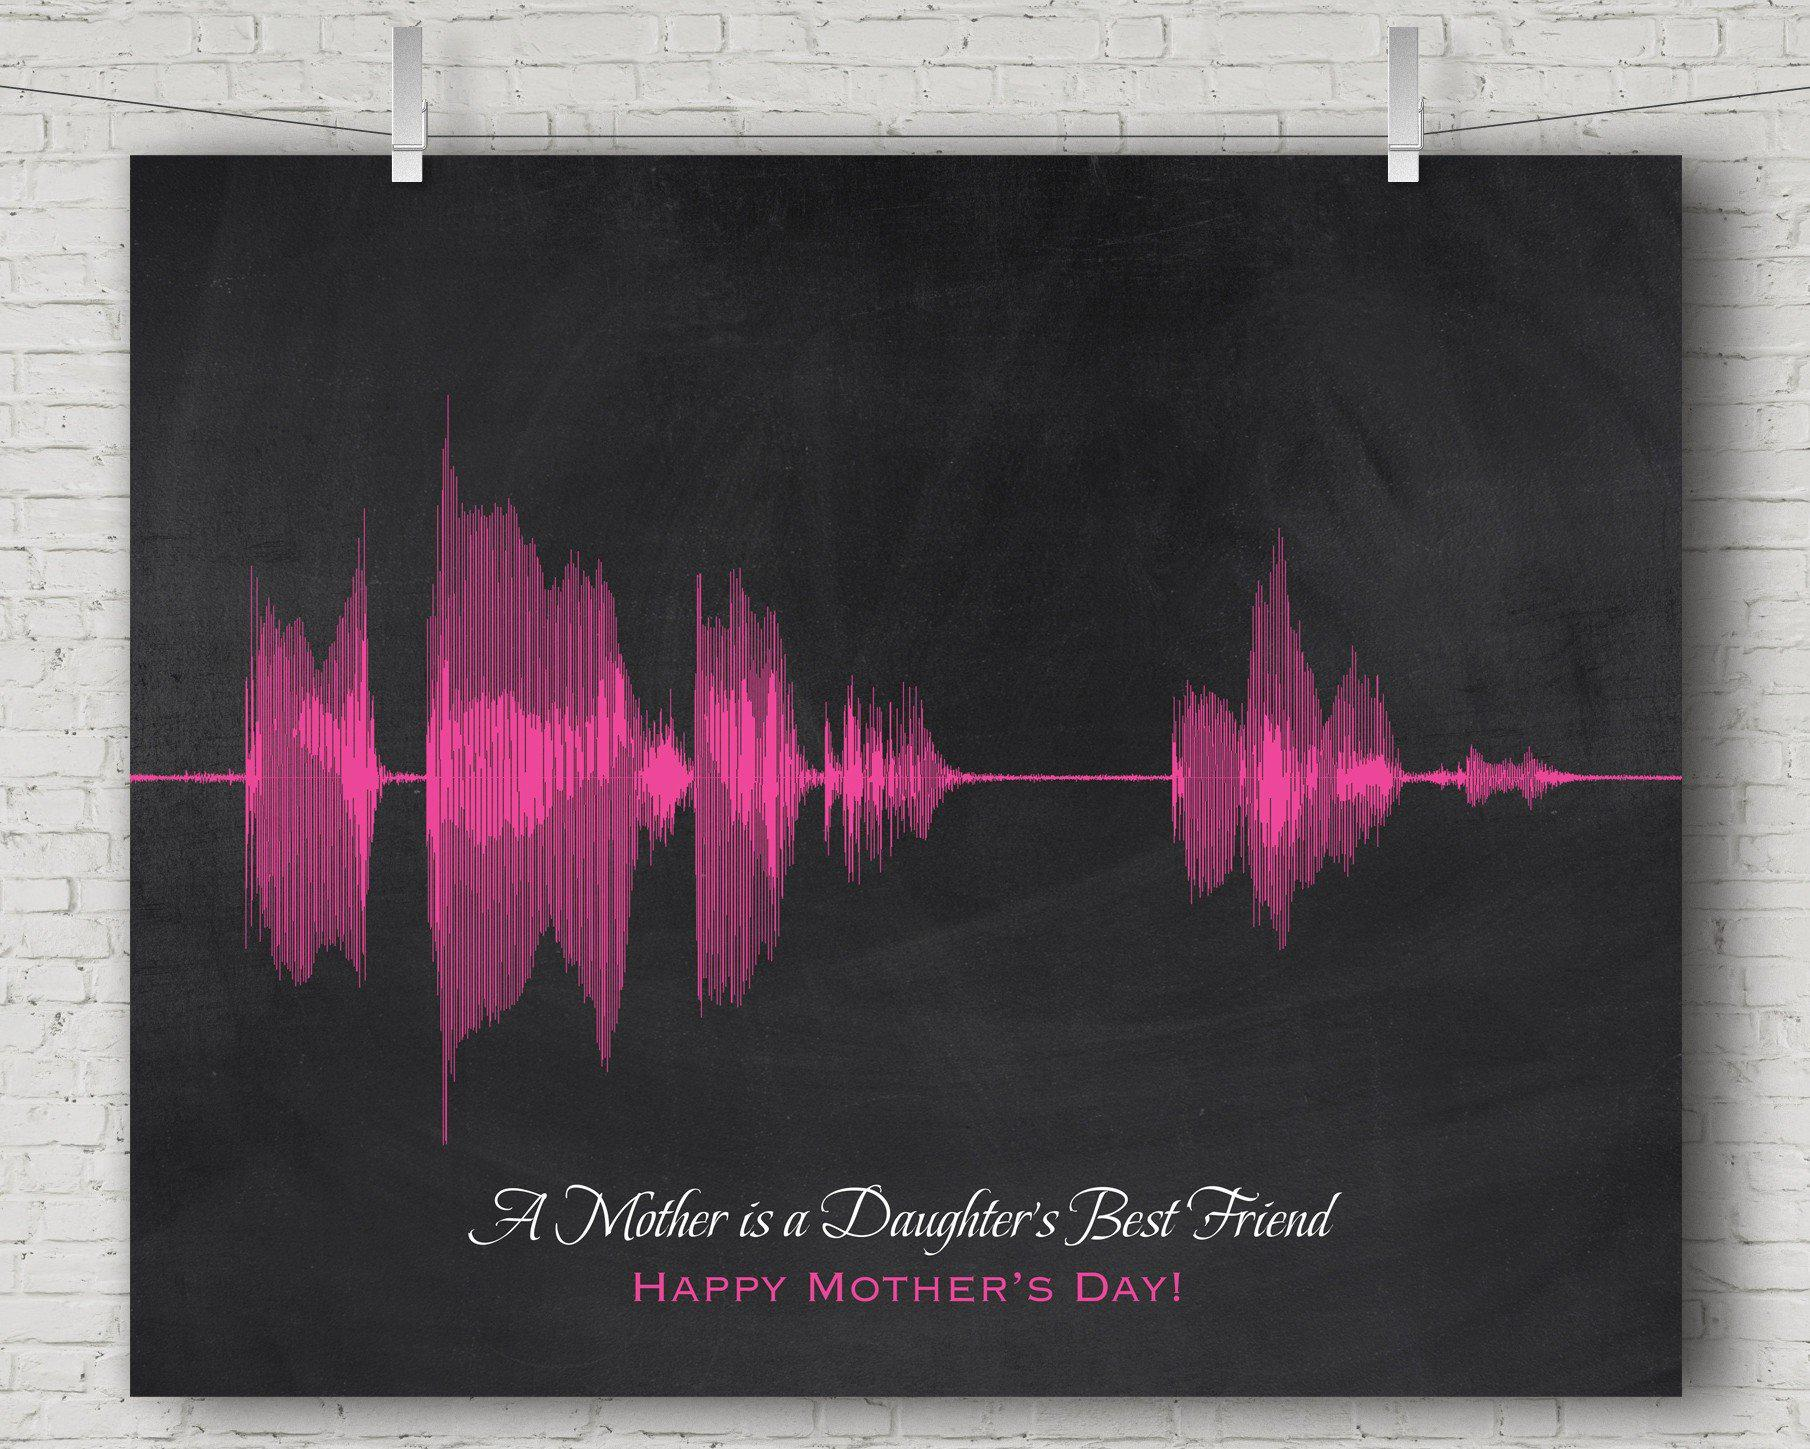 Christmas Gift for Mom from Daughter - Personalized Voice Art